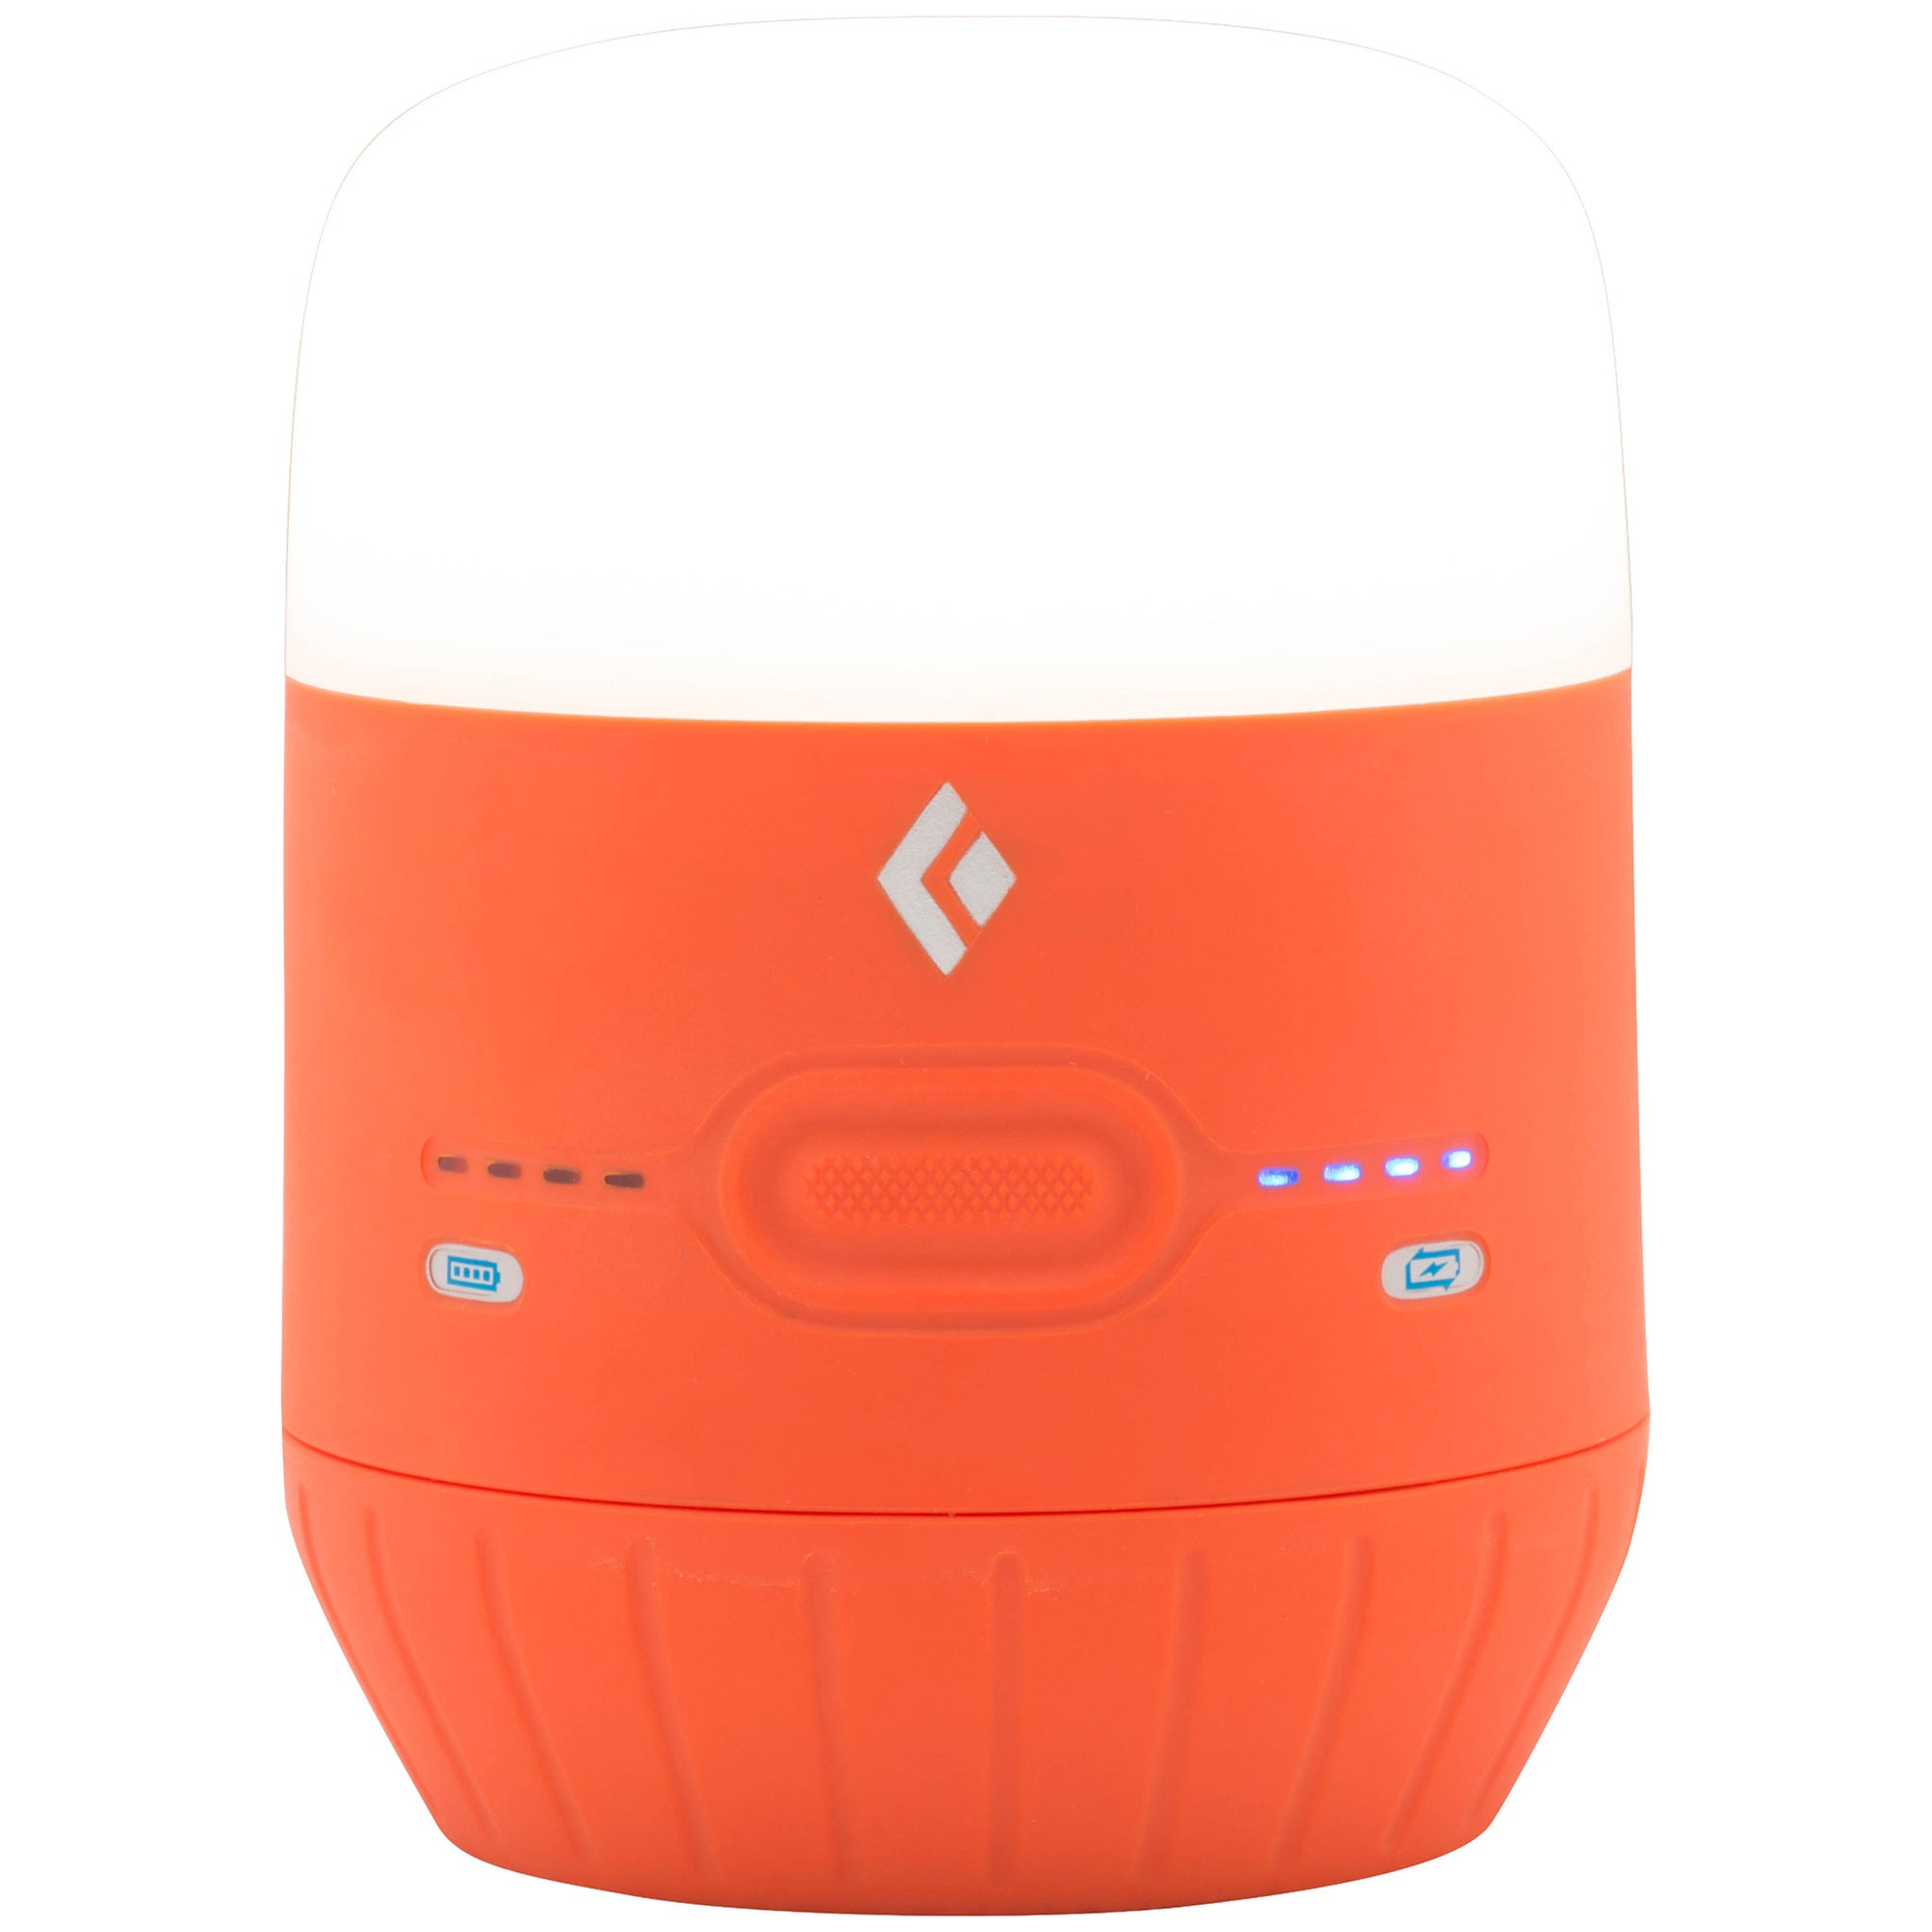 orange lantern in off mode showing battery levels